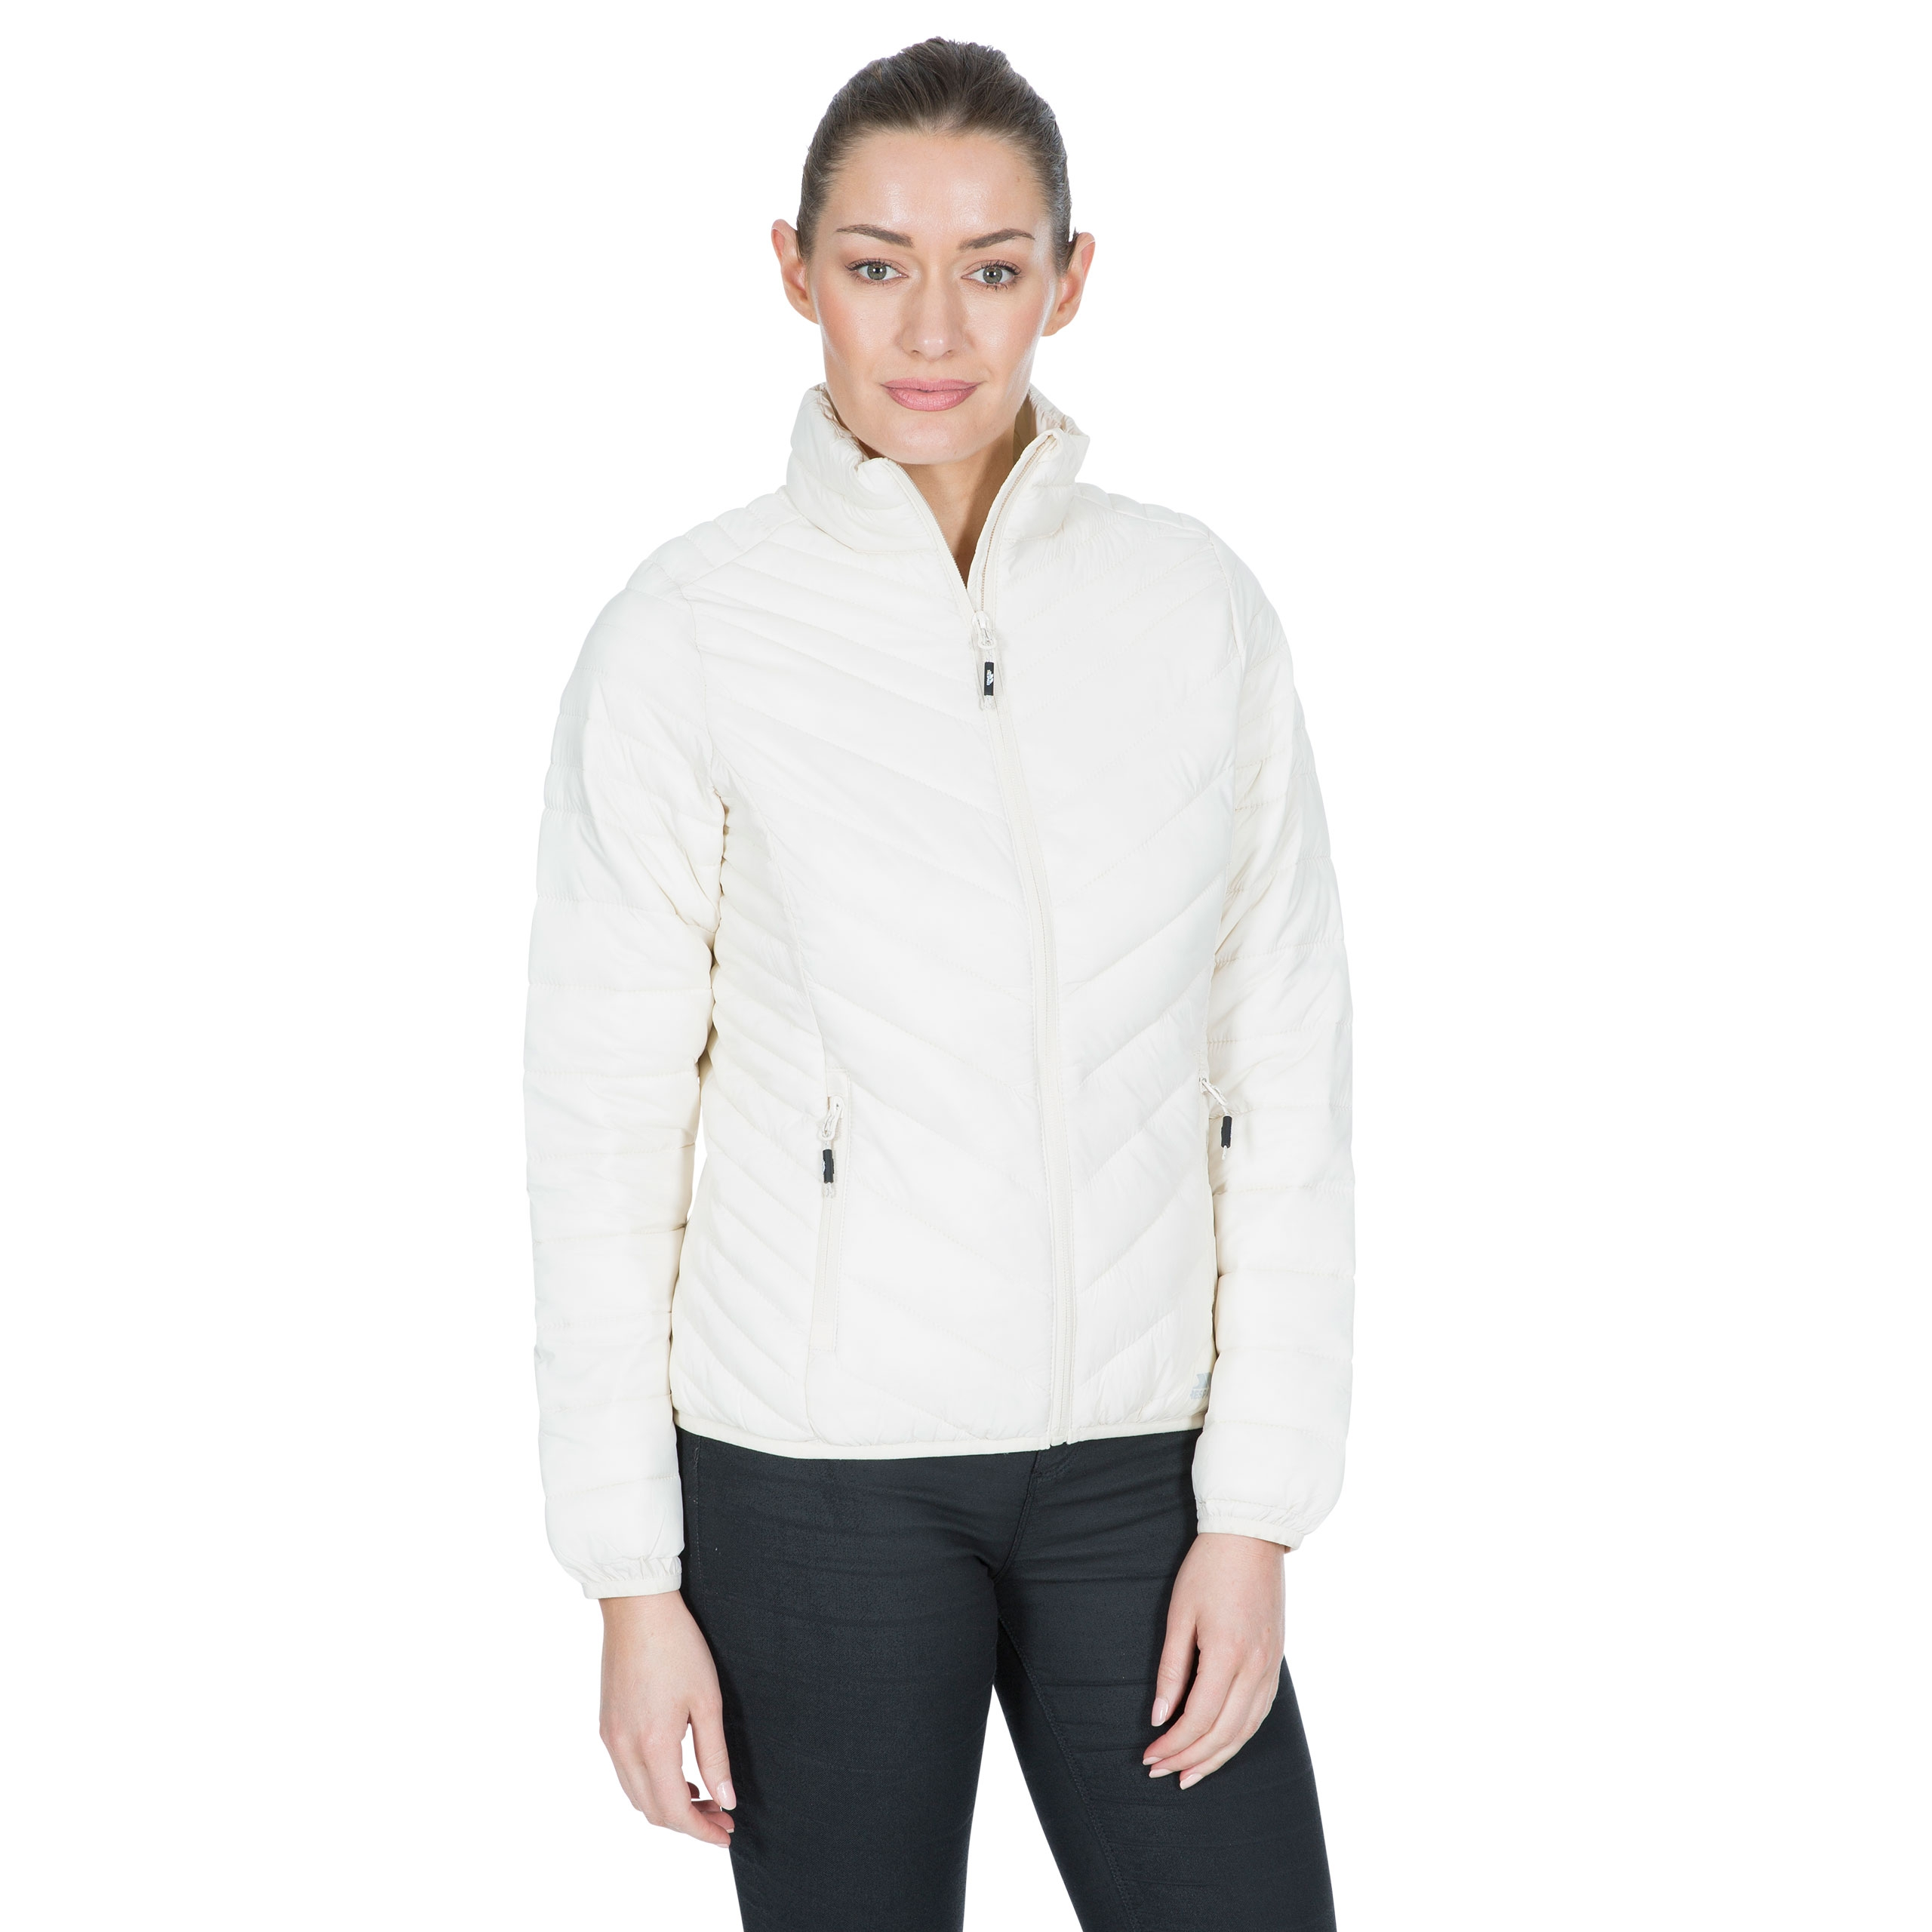 Simara Womens Padded Casual Jacket